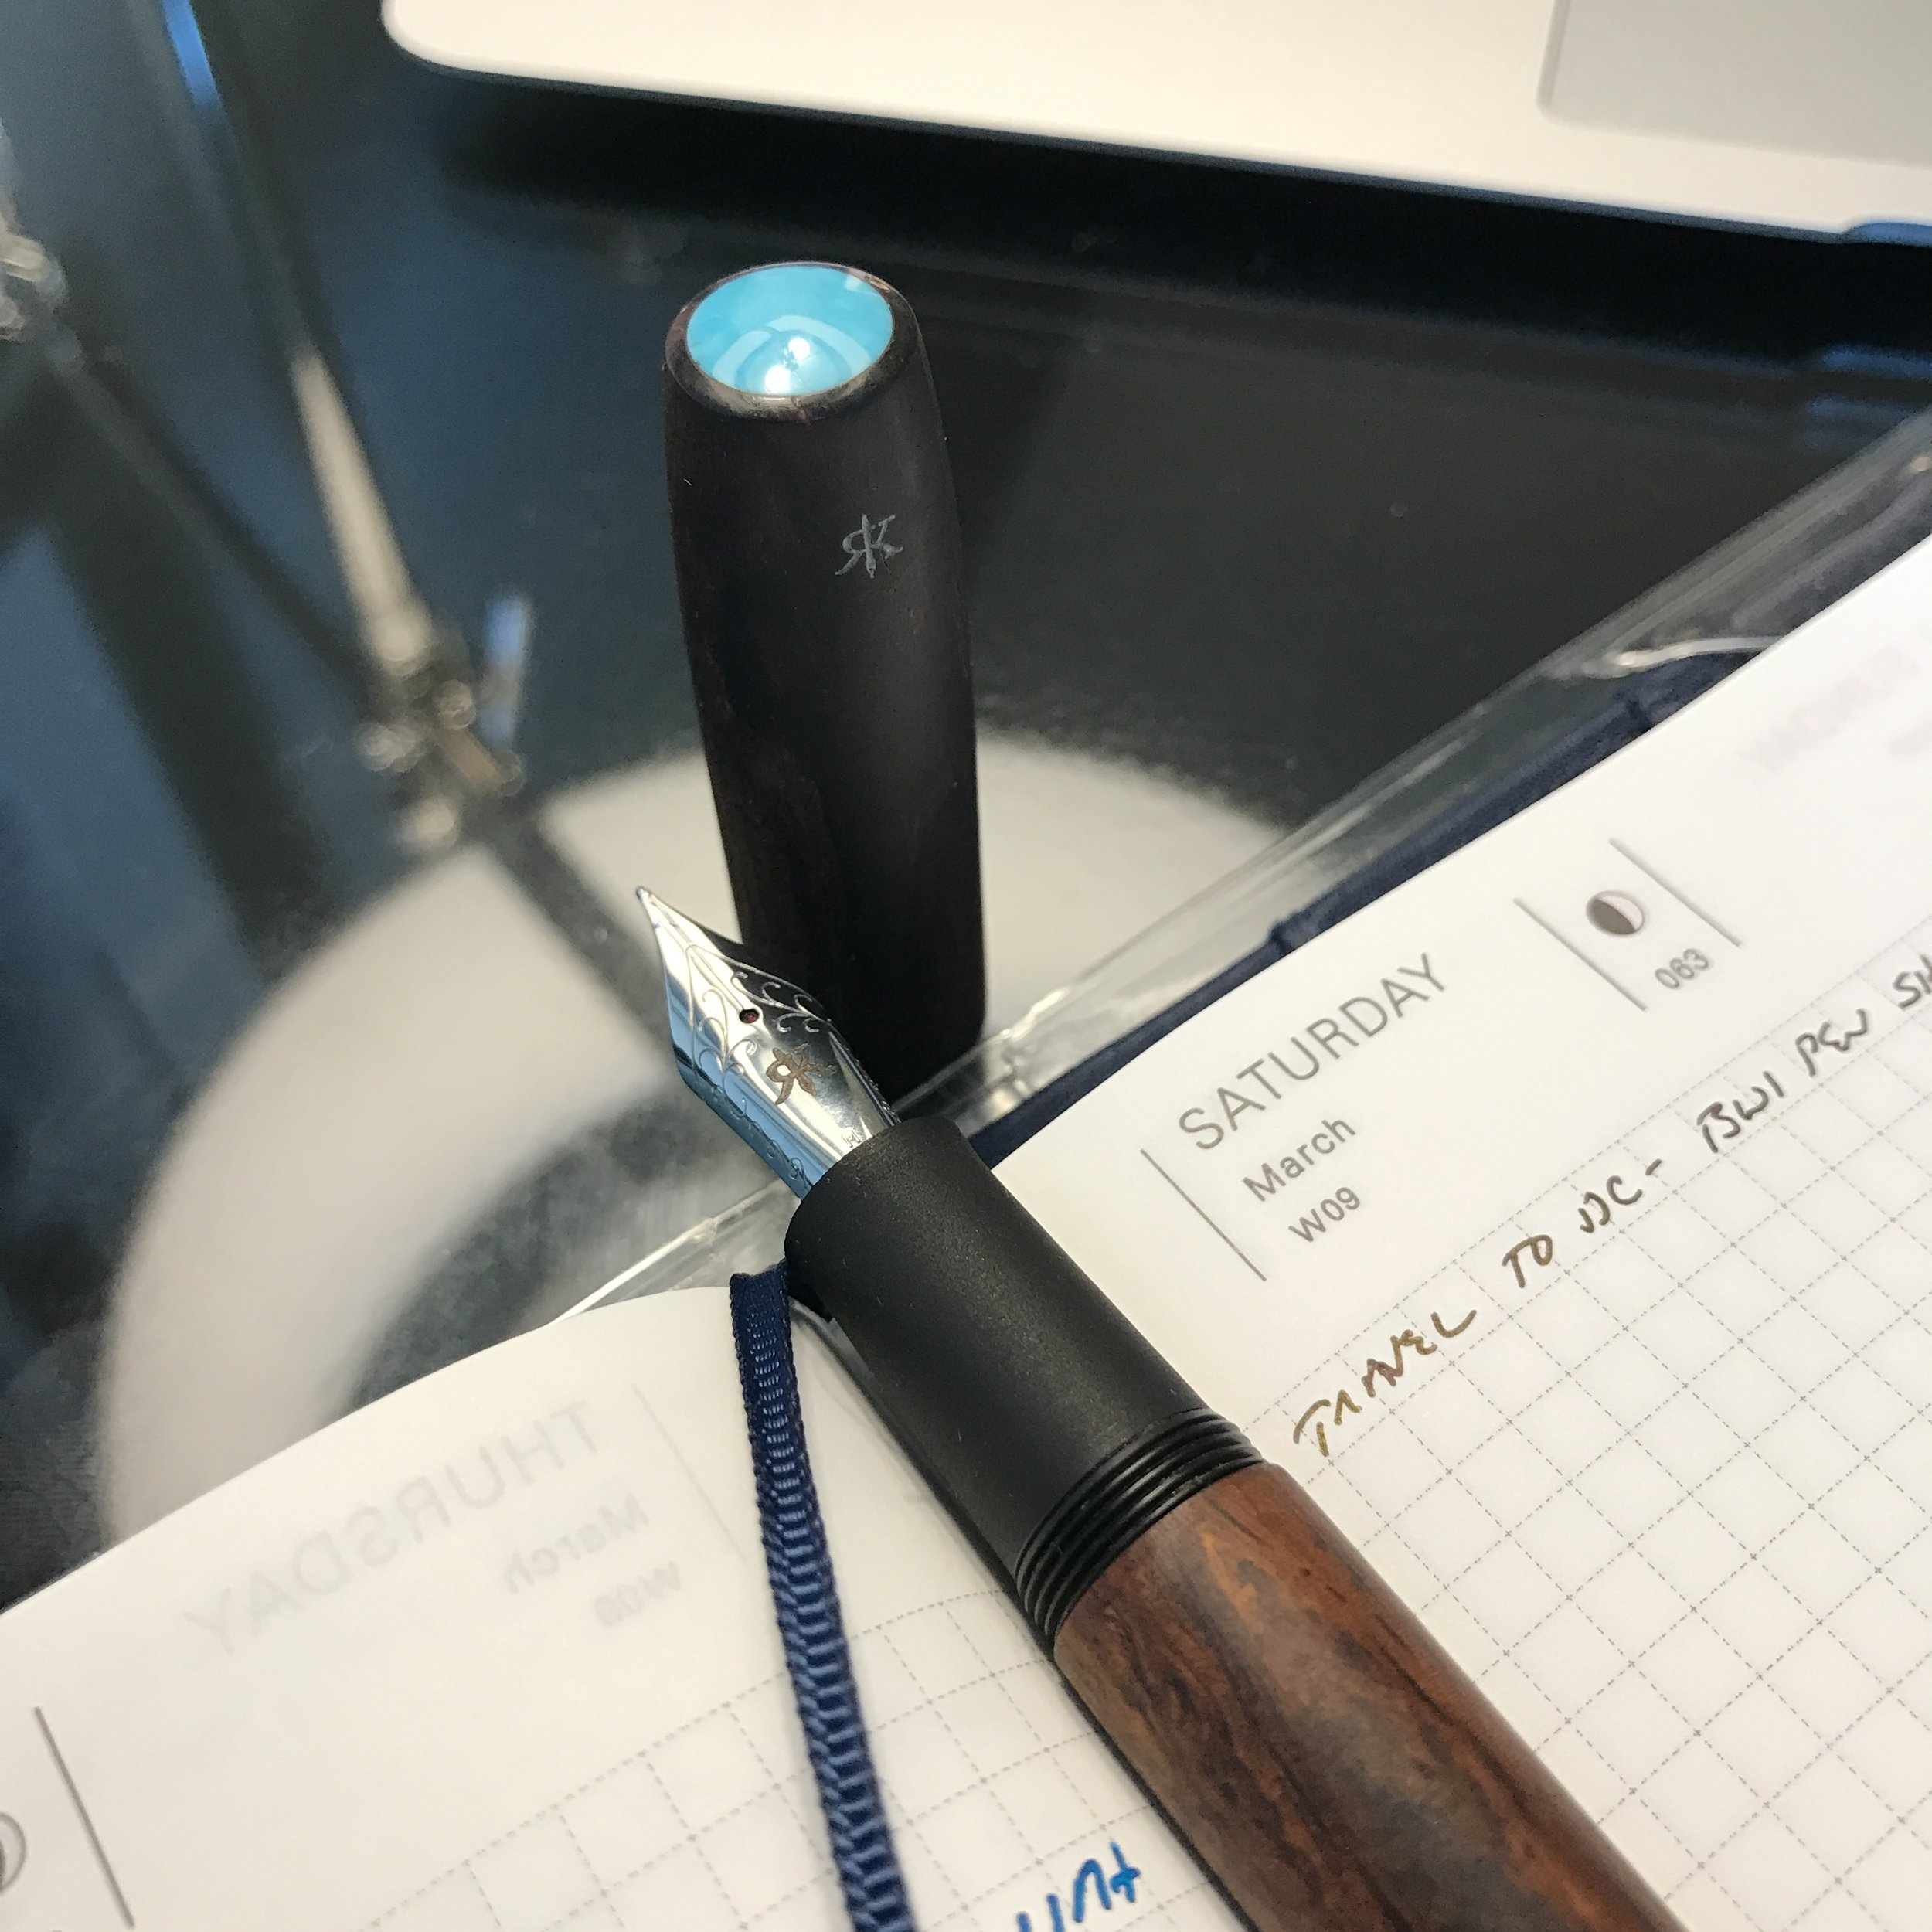 My Ryan Krusac  Legend Pen in Cocobolo with a Turquoise Inlay and Ebonite Section . I've been eyeing one of these pens for a long time - look for a review up on the blog in the future.